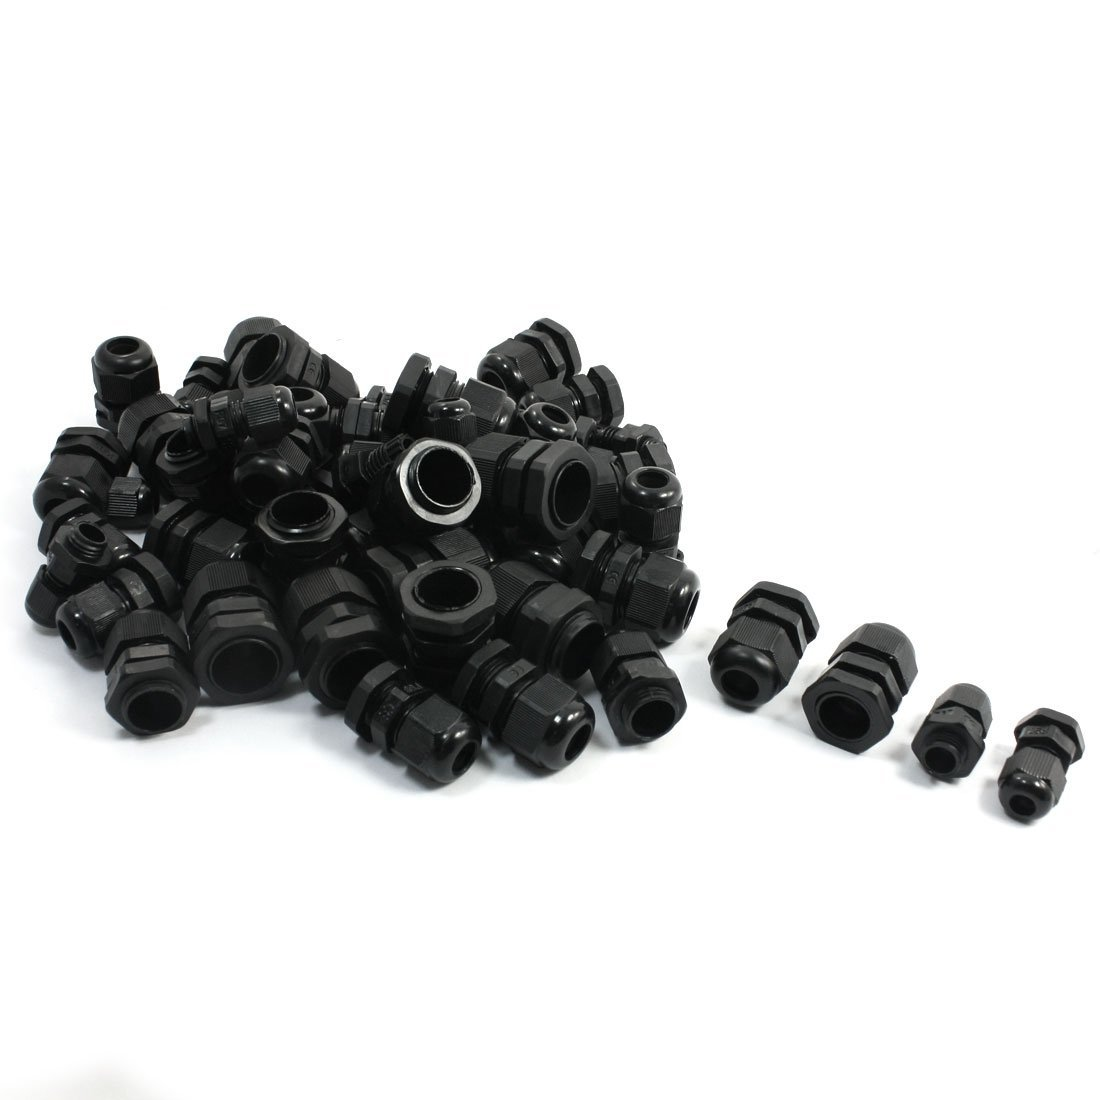 50PCS PG7 PG9 PG11 PG13.5 PG16 Black Plastic Waterproof Cable Glands стоимость